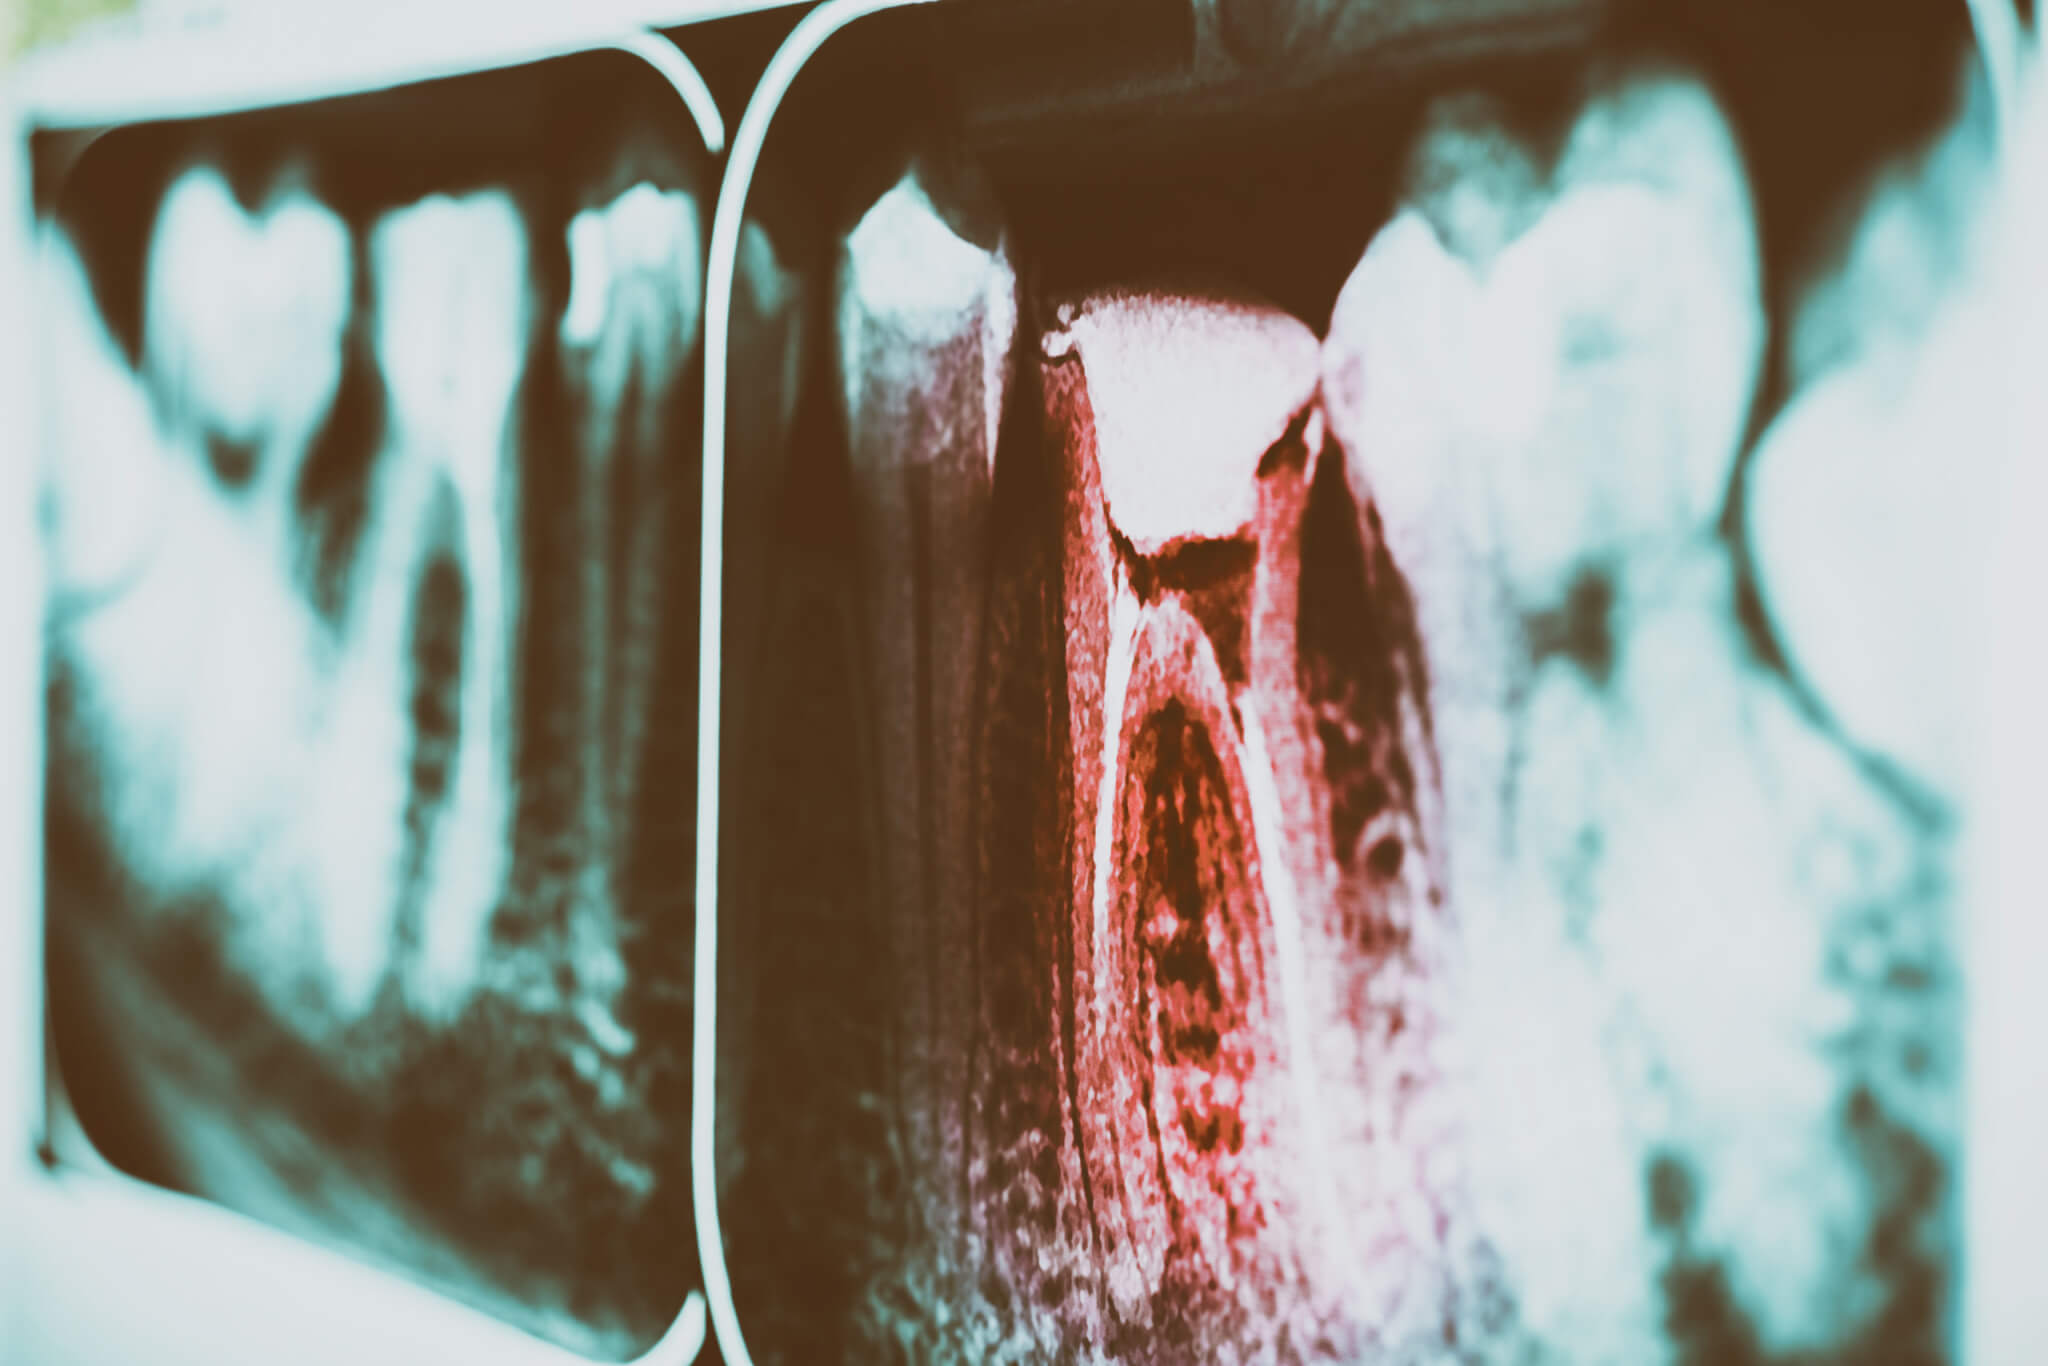 pain-of-tooth-decay-on-teeth-x-ray-TP5AF56